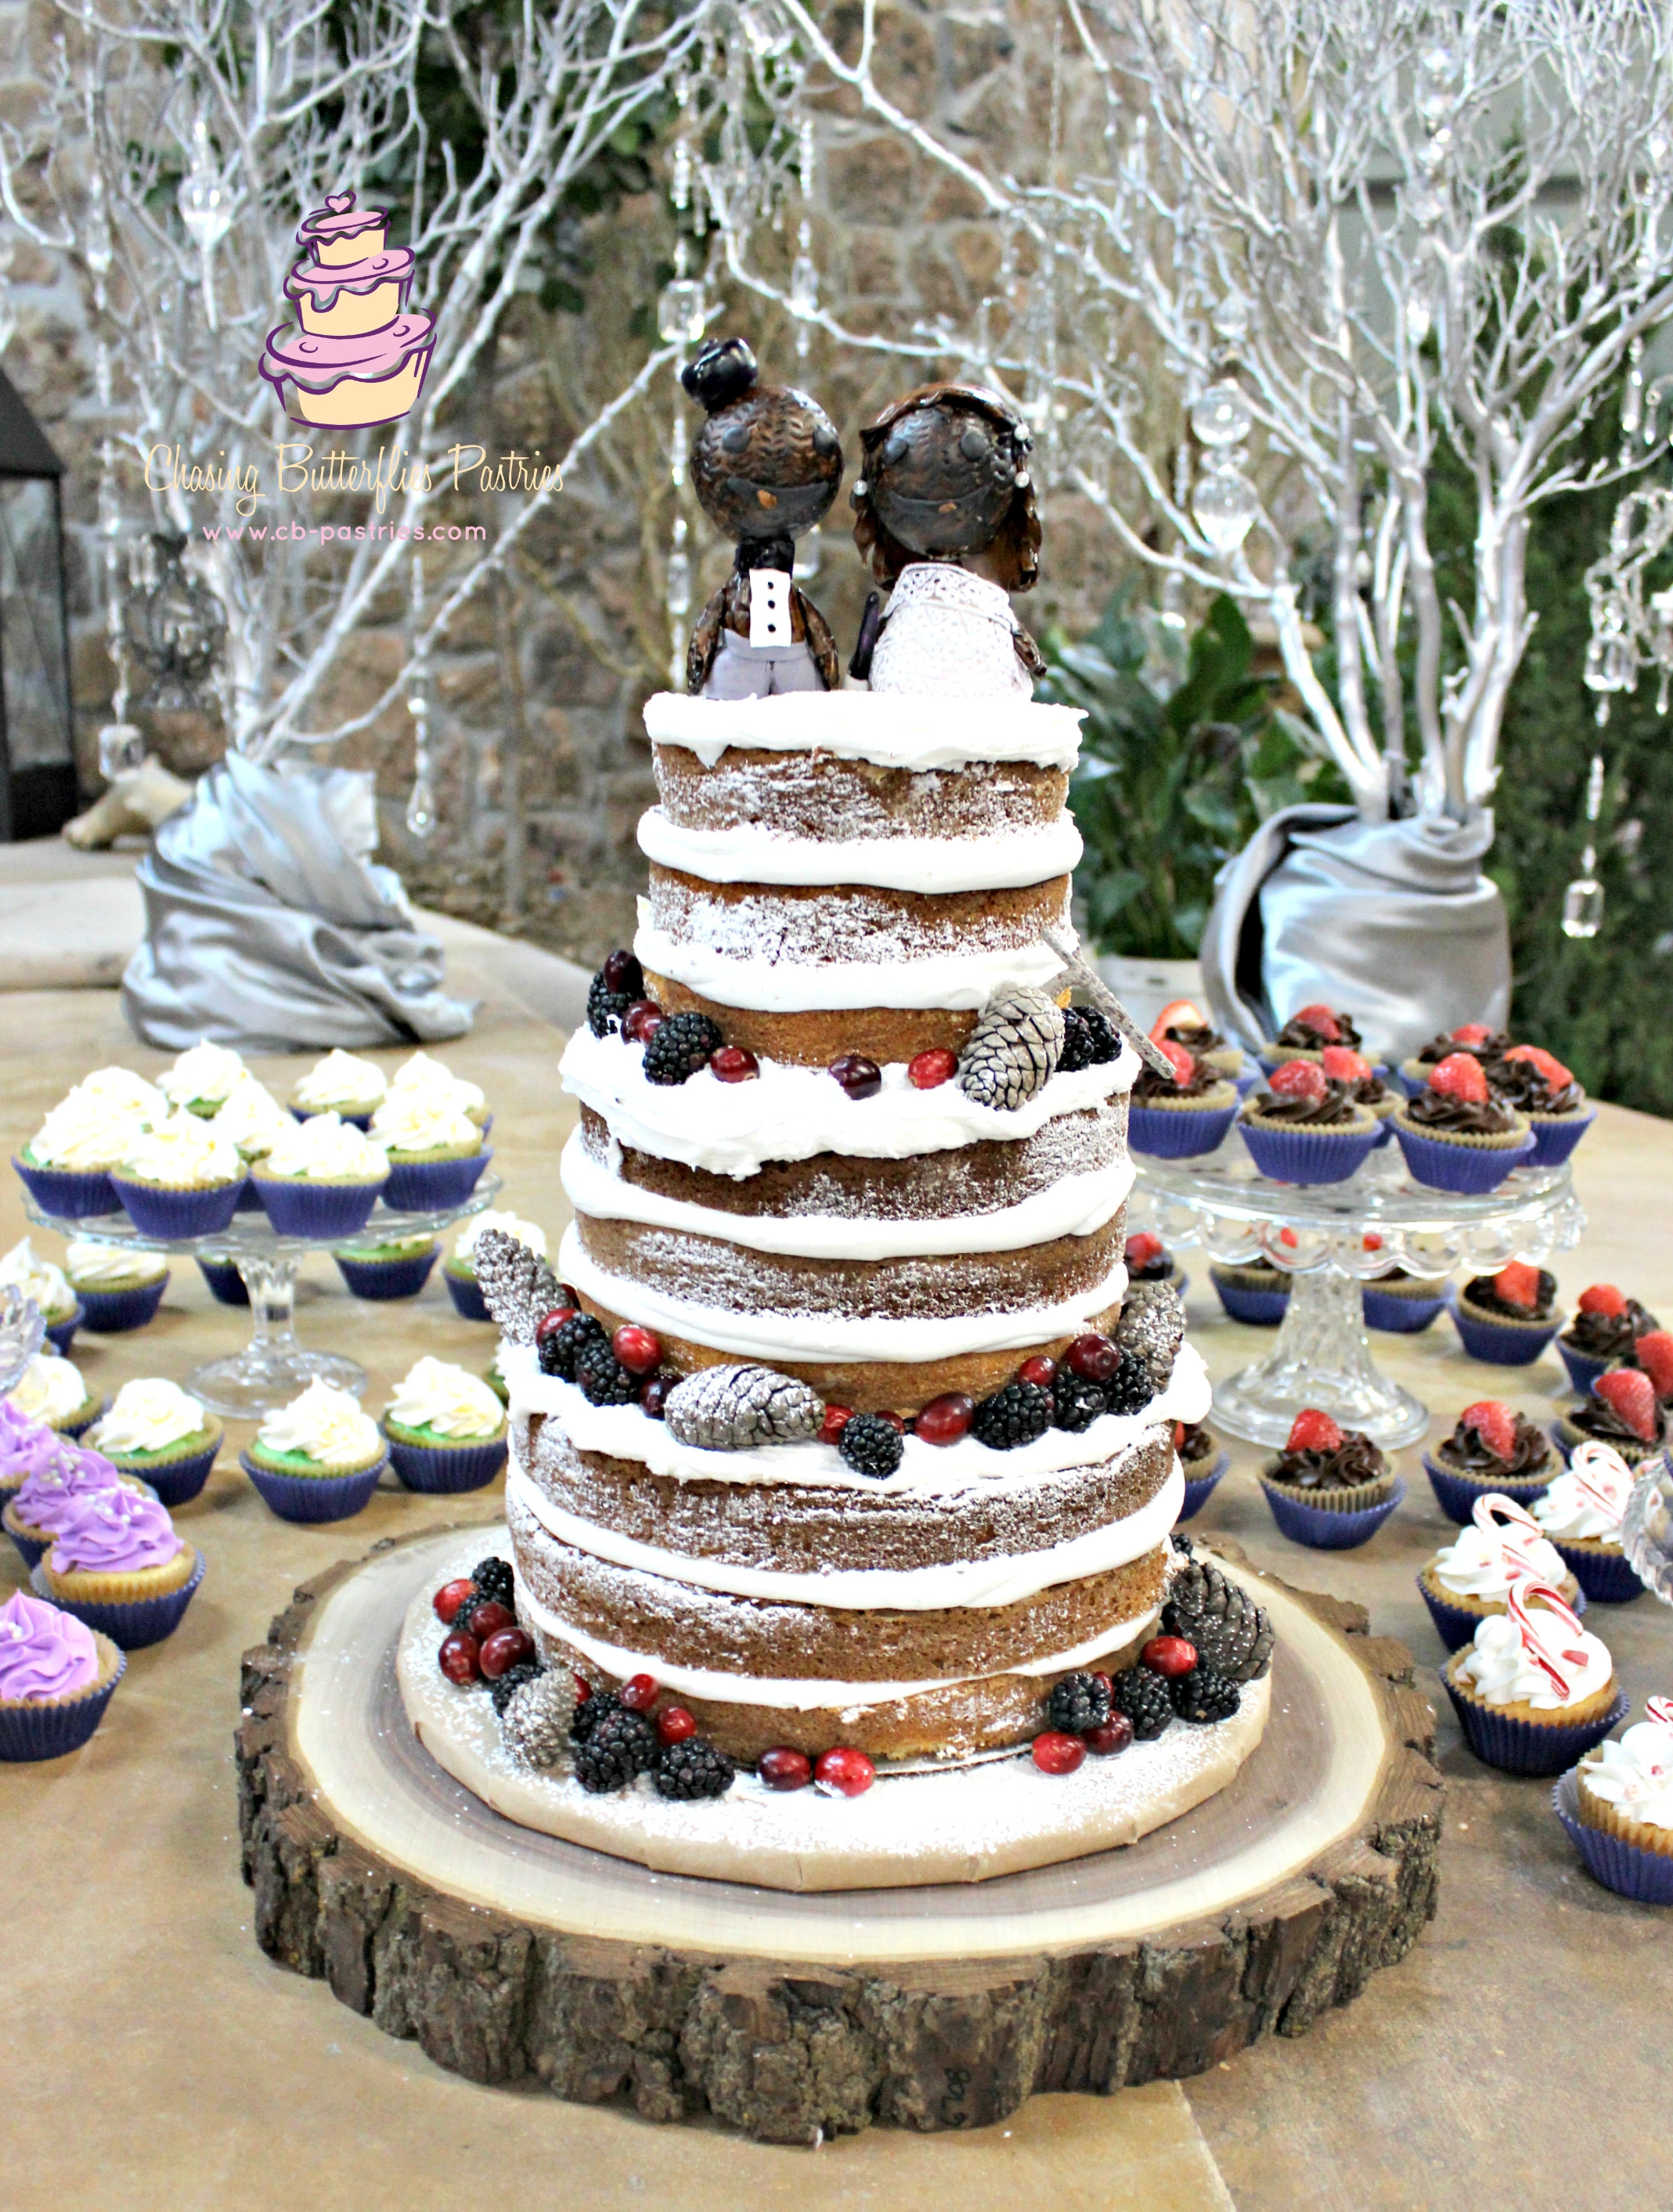 Rustic Themed Wedding Cakes  Winter Themed Rustic Naked Wedding Cake With Handmade